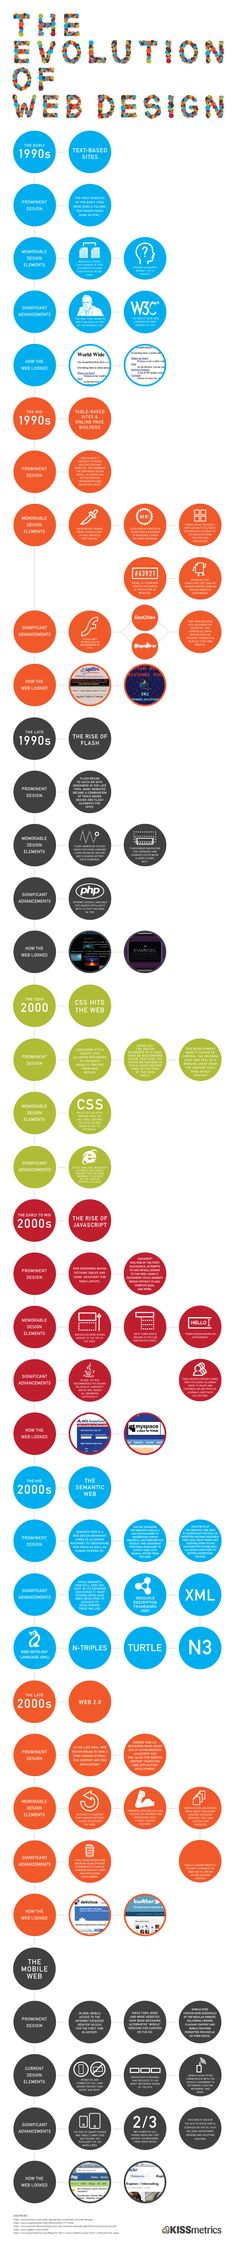 An #infographic depicting 'The Evolution of Web Design'. #inspiration #timeline